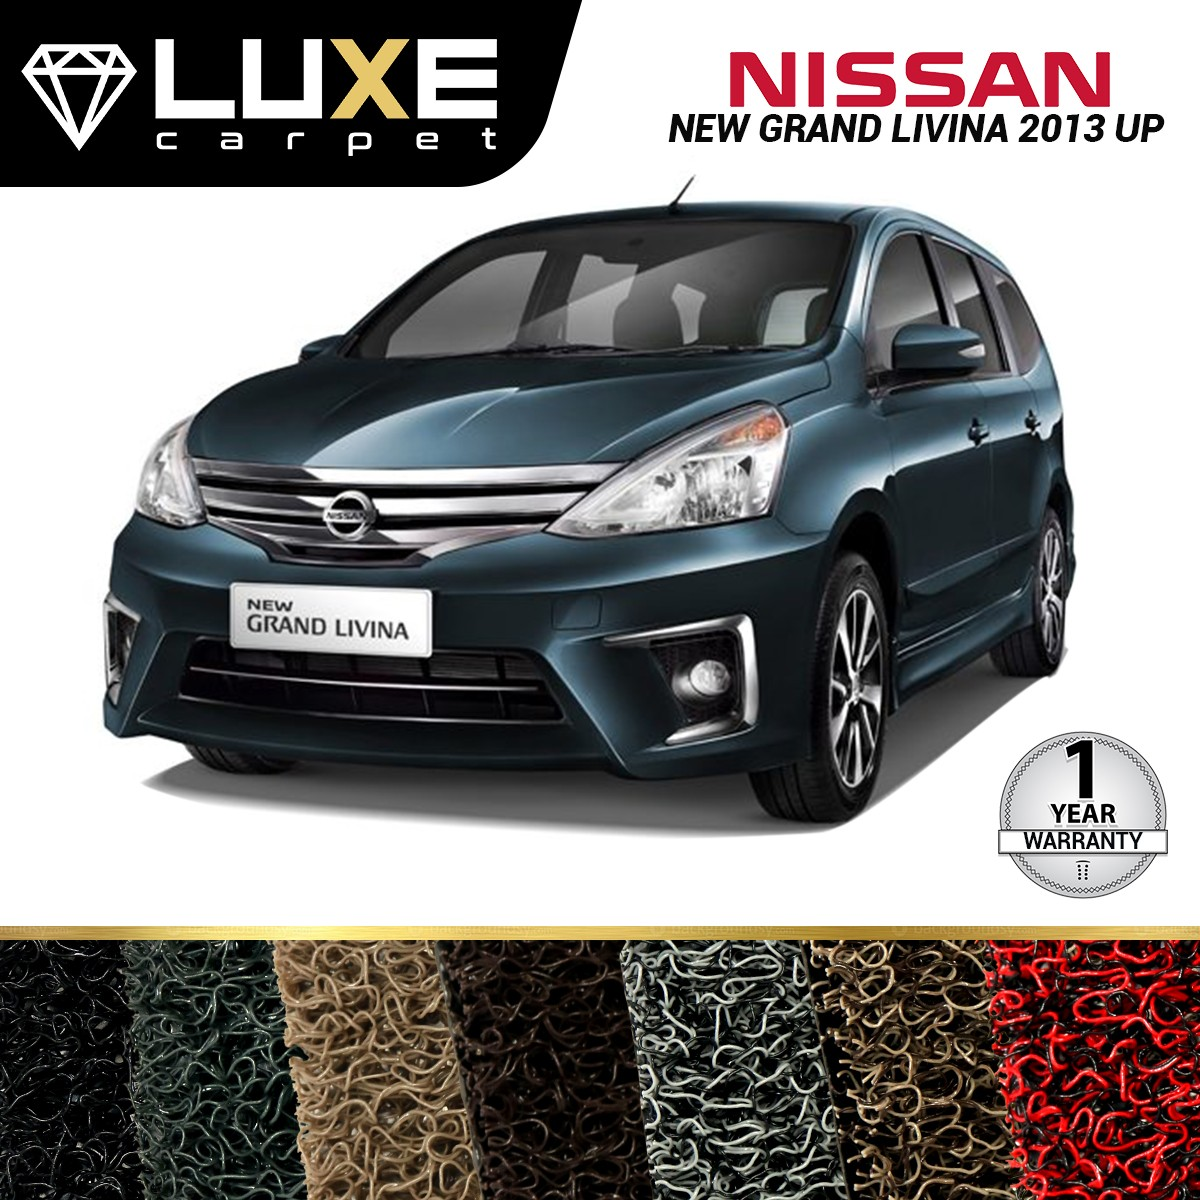 KARPET LUXE NISSAN GRAND LIVINA 2013 UP - GOLD SERIES - NON BAGASI